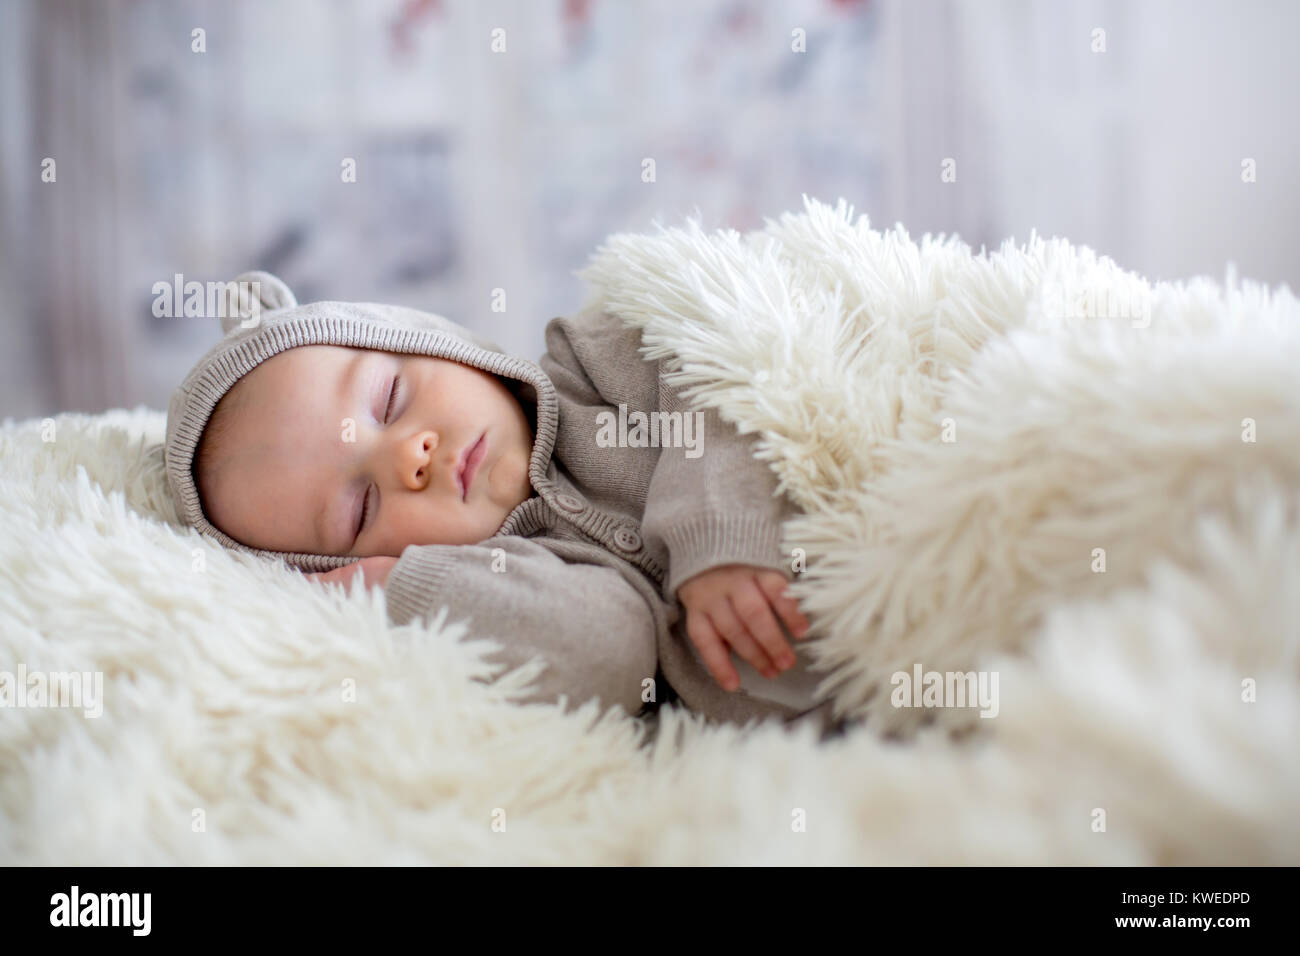 Sweet Baby Boy In Bear Overall Sleeping In Bed With Teddy Bear Stock Photo Alamy